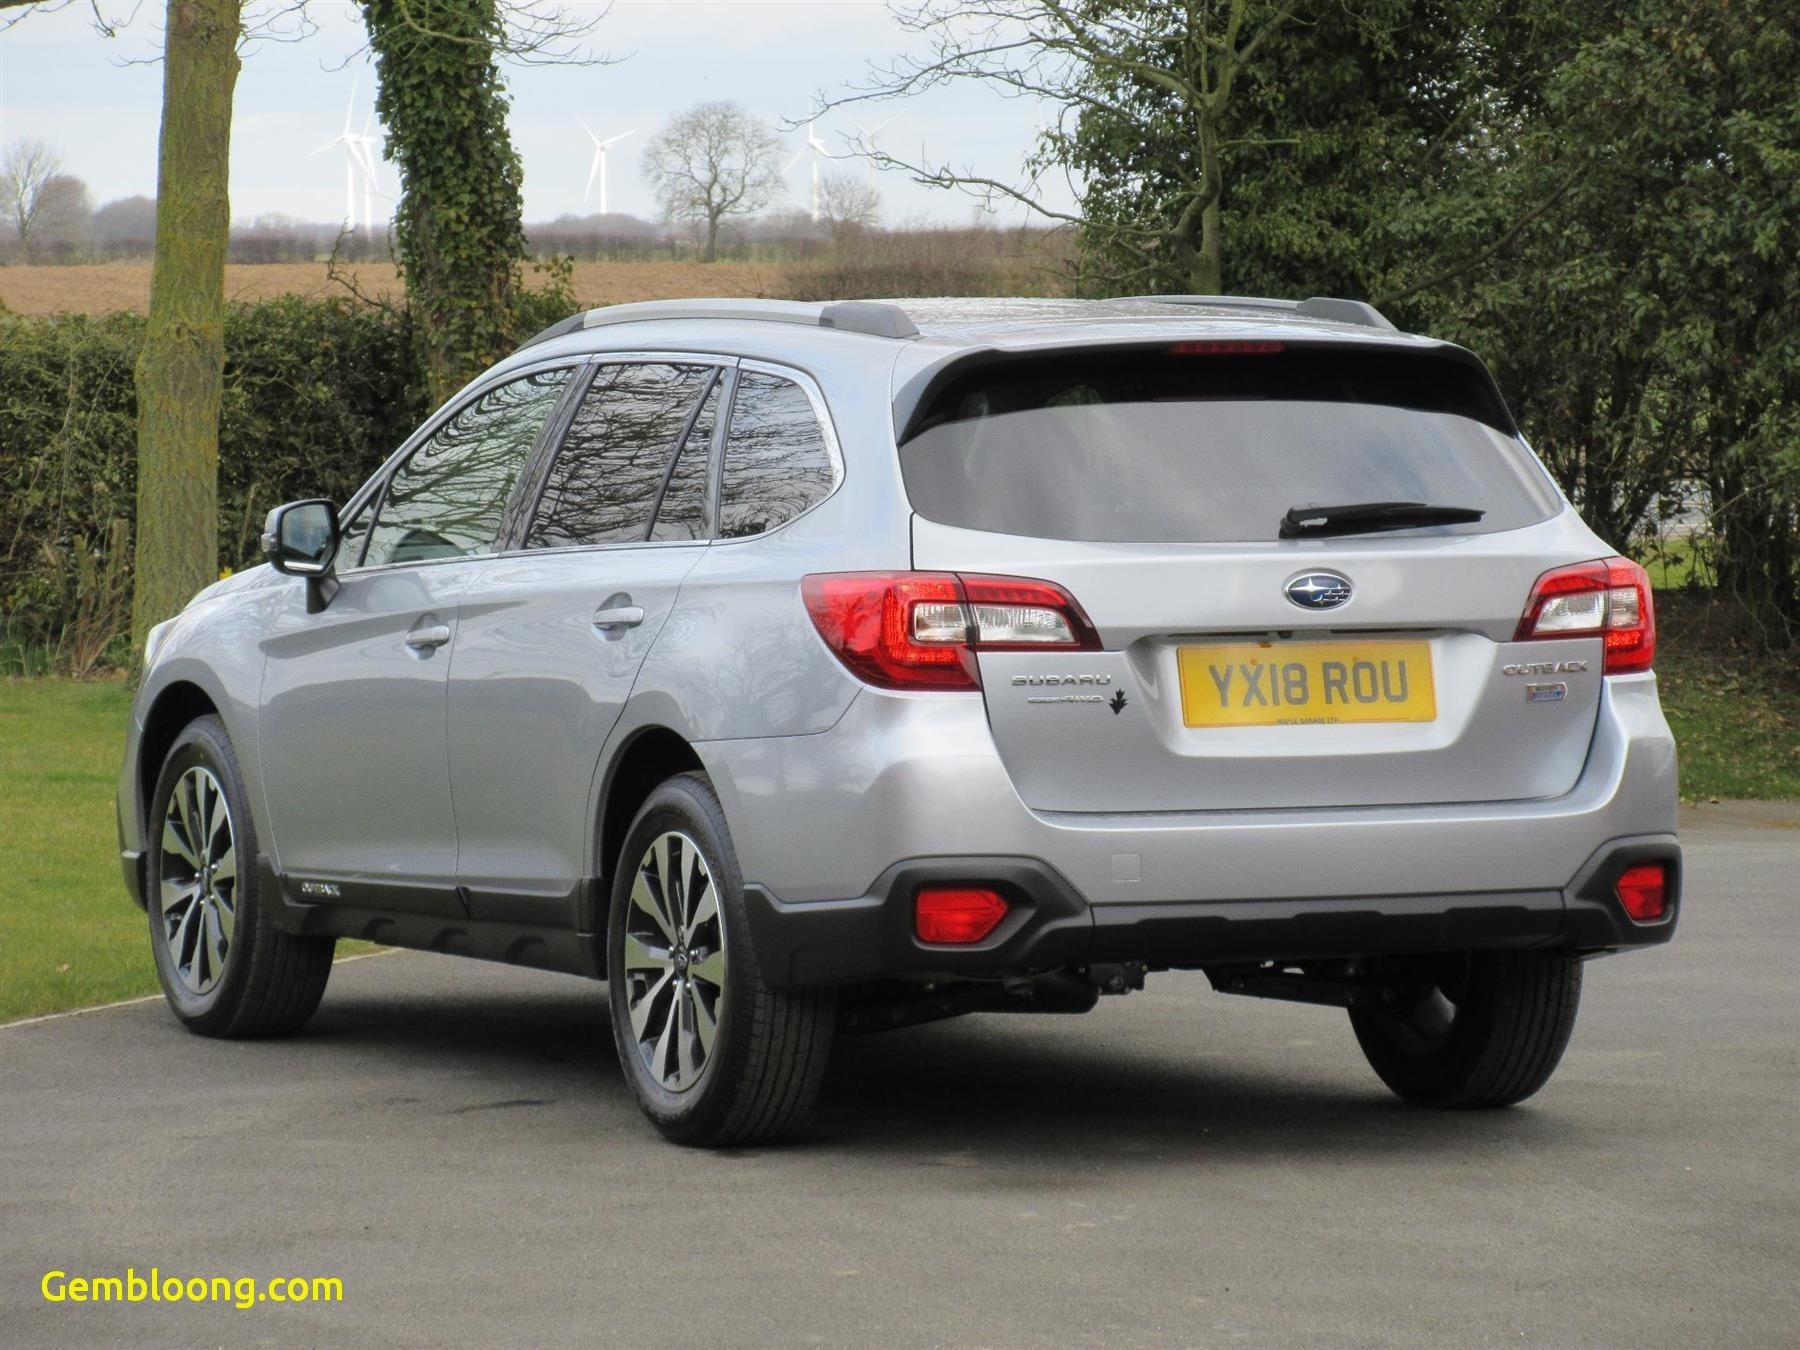 Used Cars for Sale Near Me Under 5000 by Owner Awesome Cars for Sale Near Me for Under 3000 Inspirational Used Cars Near Me